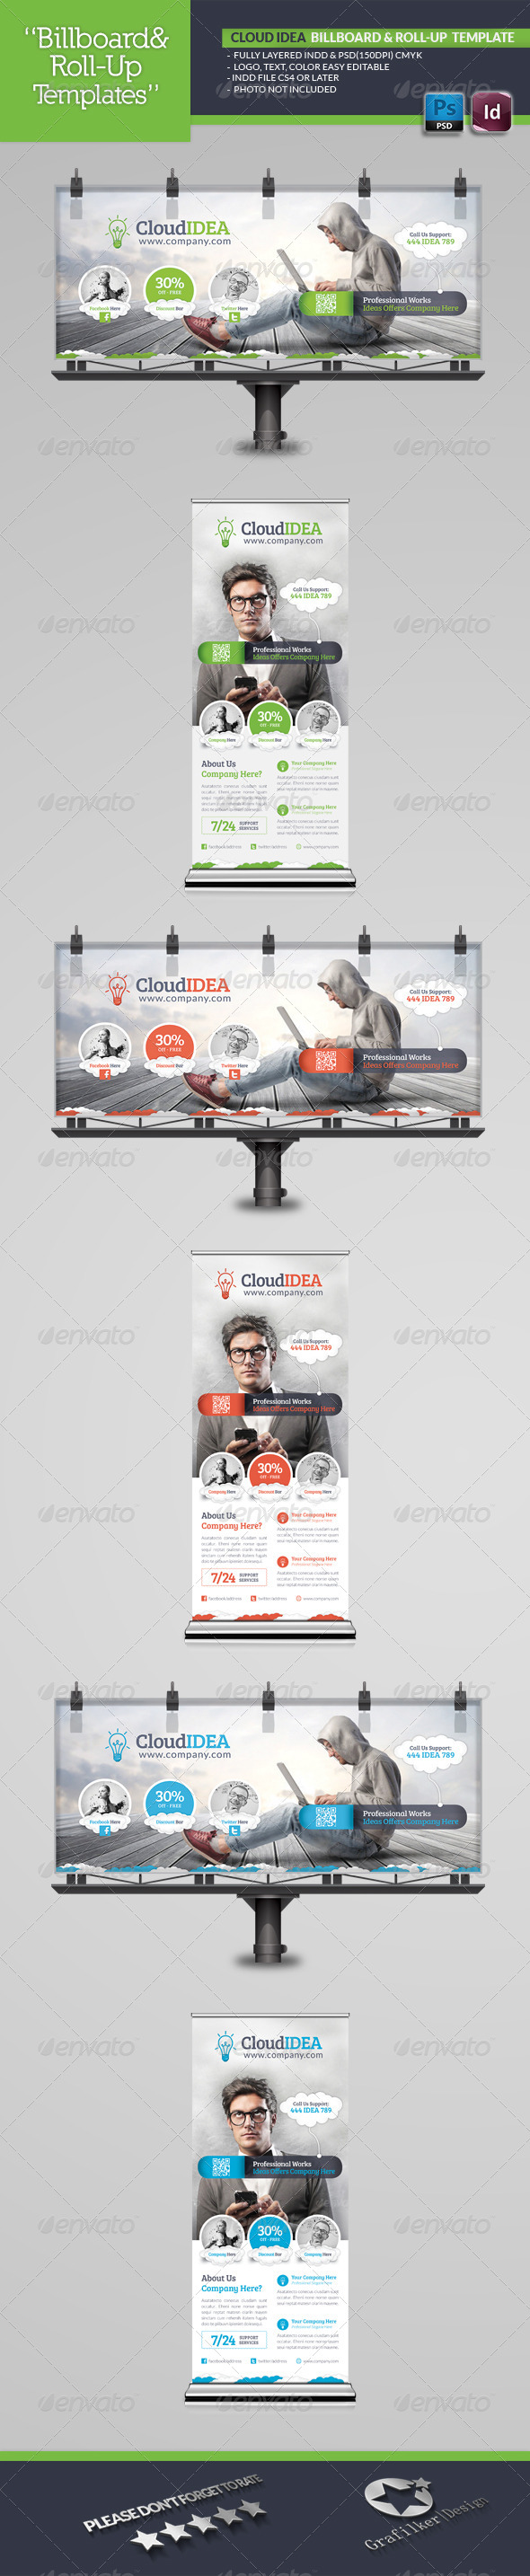 Cloud Idea Billboard & Roll-Up Template